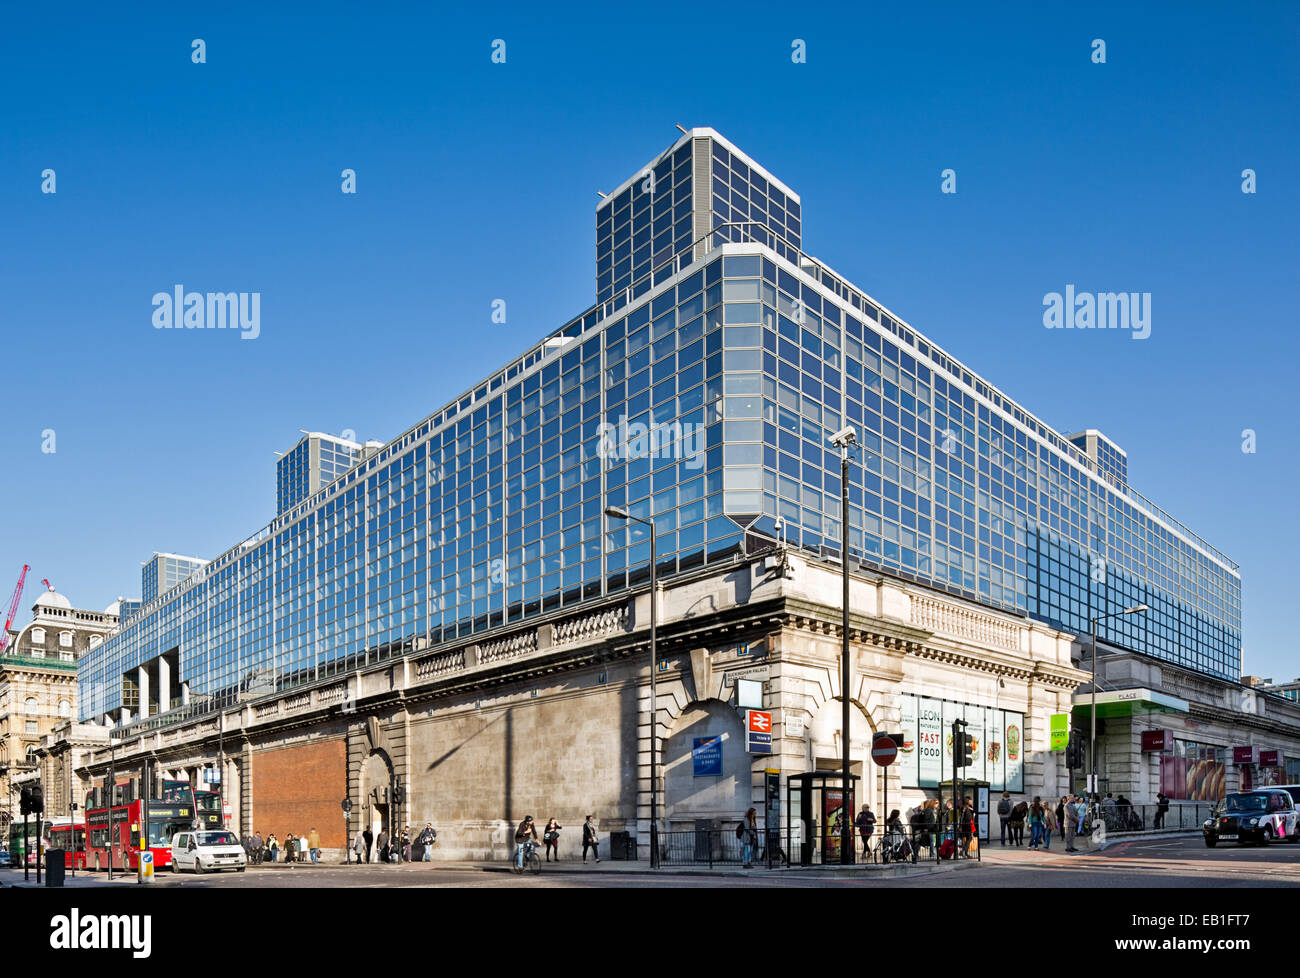 Prestige offices 111 Buckingham Palace Road London - Stock Image